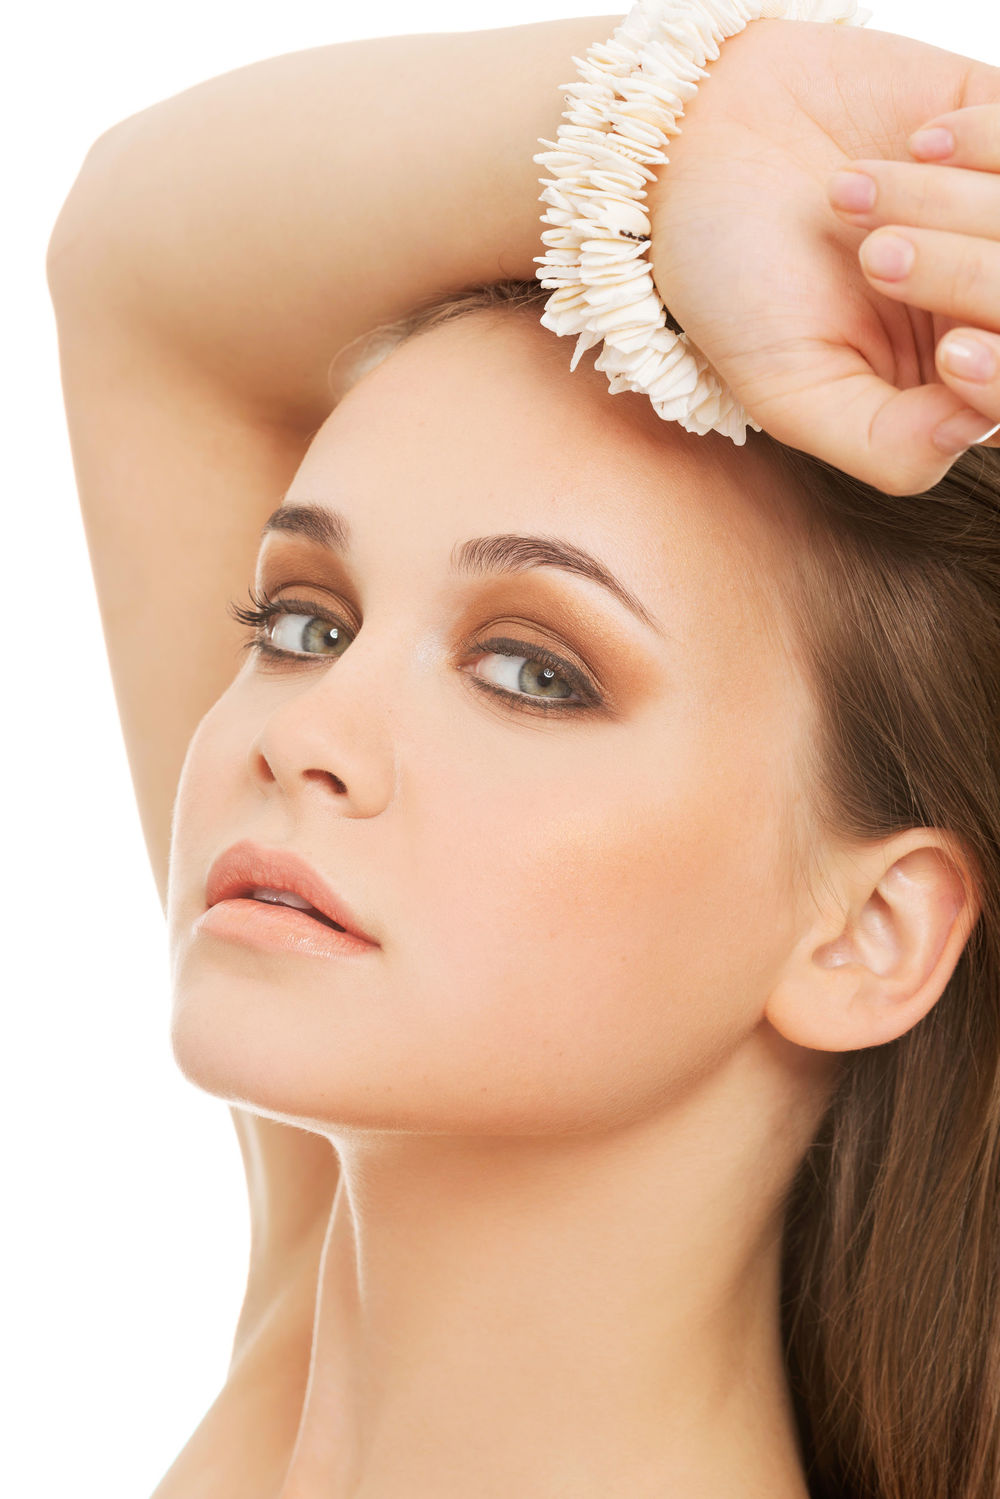 Woman getting laser hair treatment at Florida Aesthetics and Medical Weight Loss in Brandon, Fl